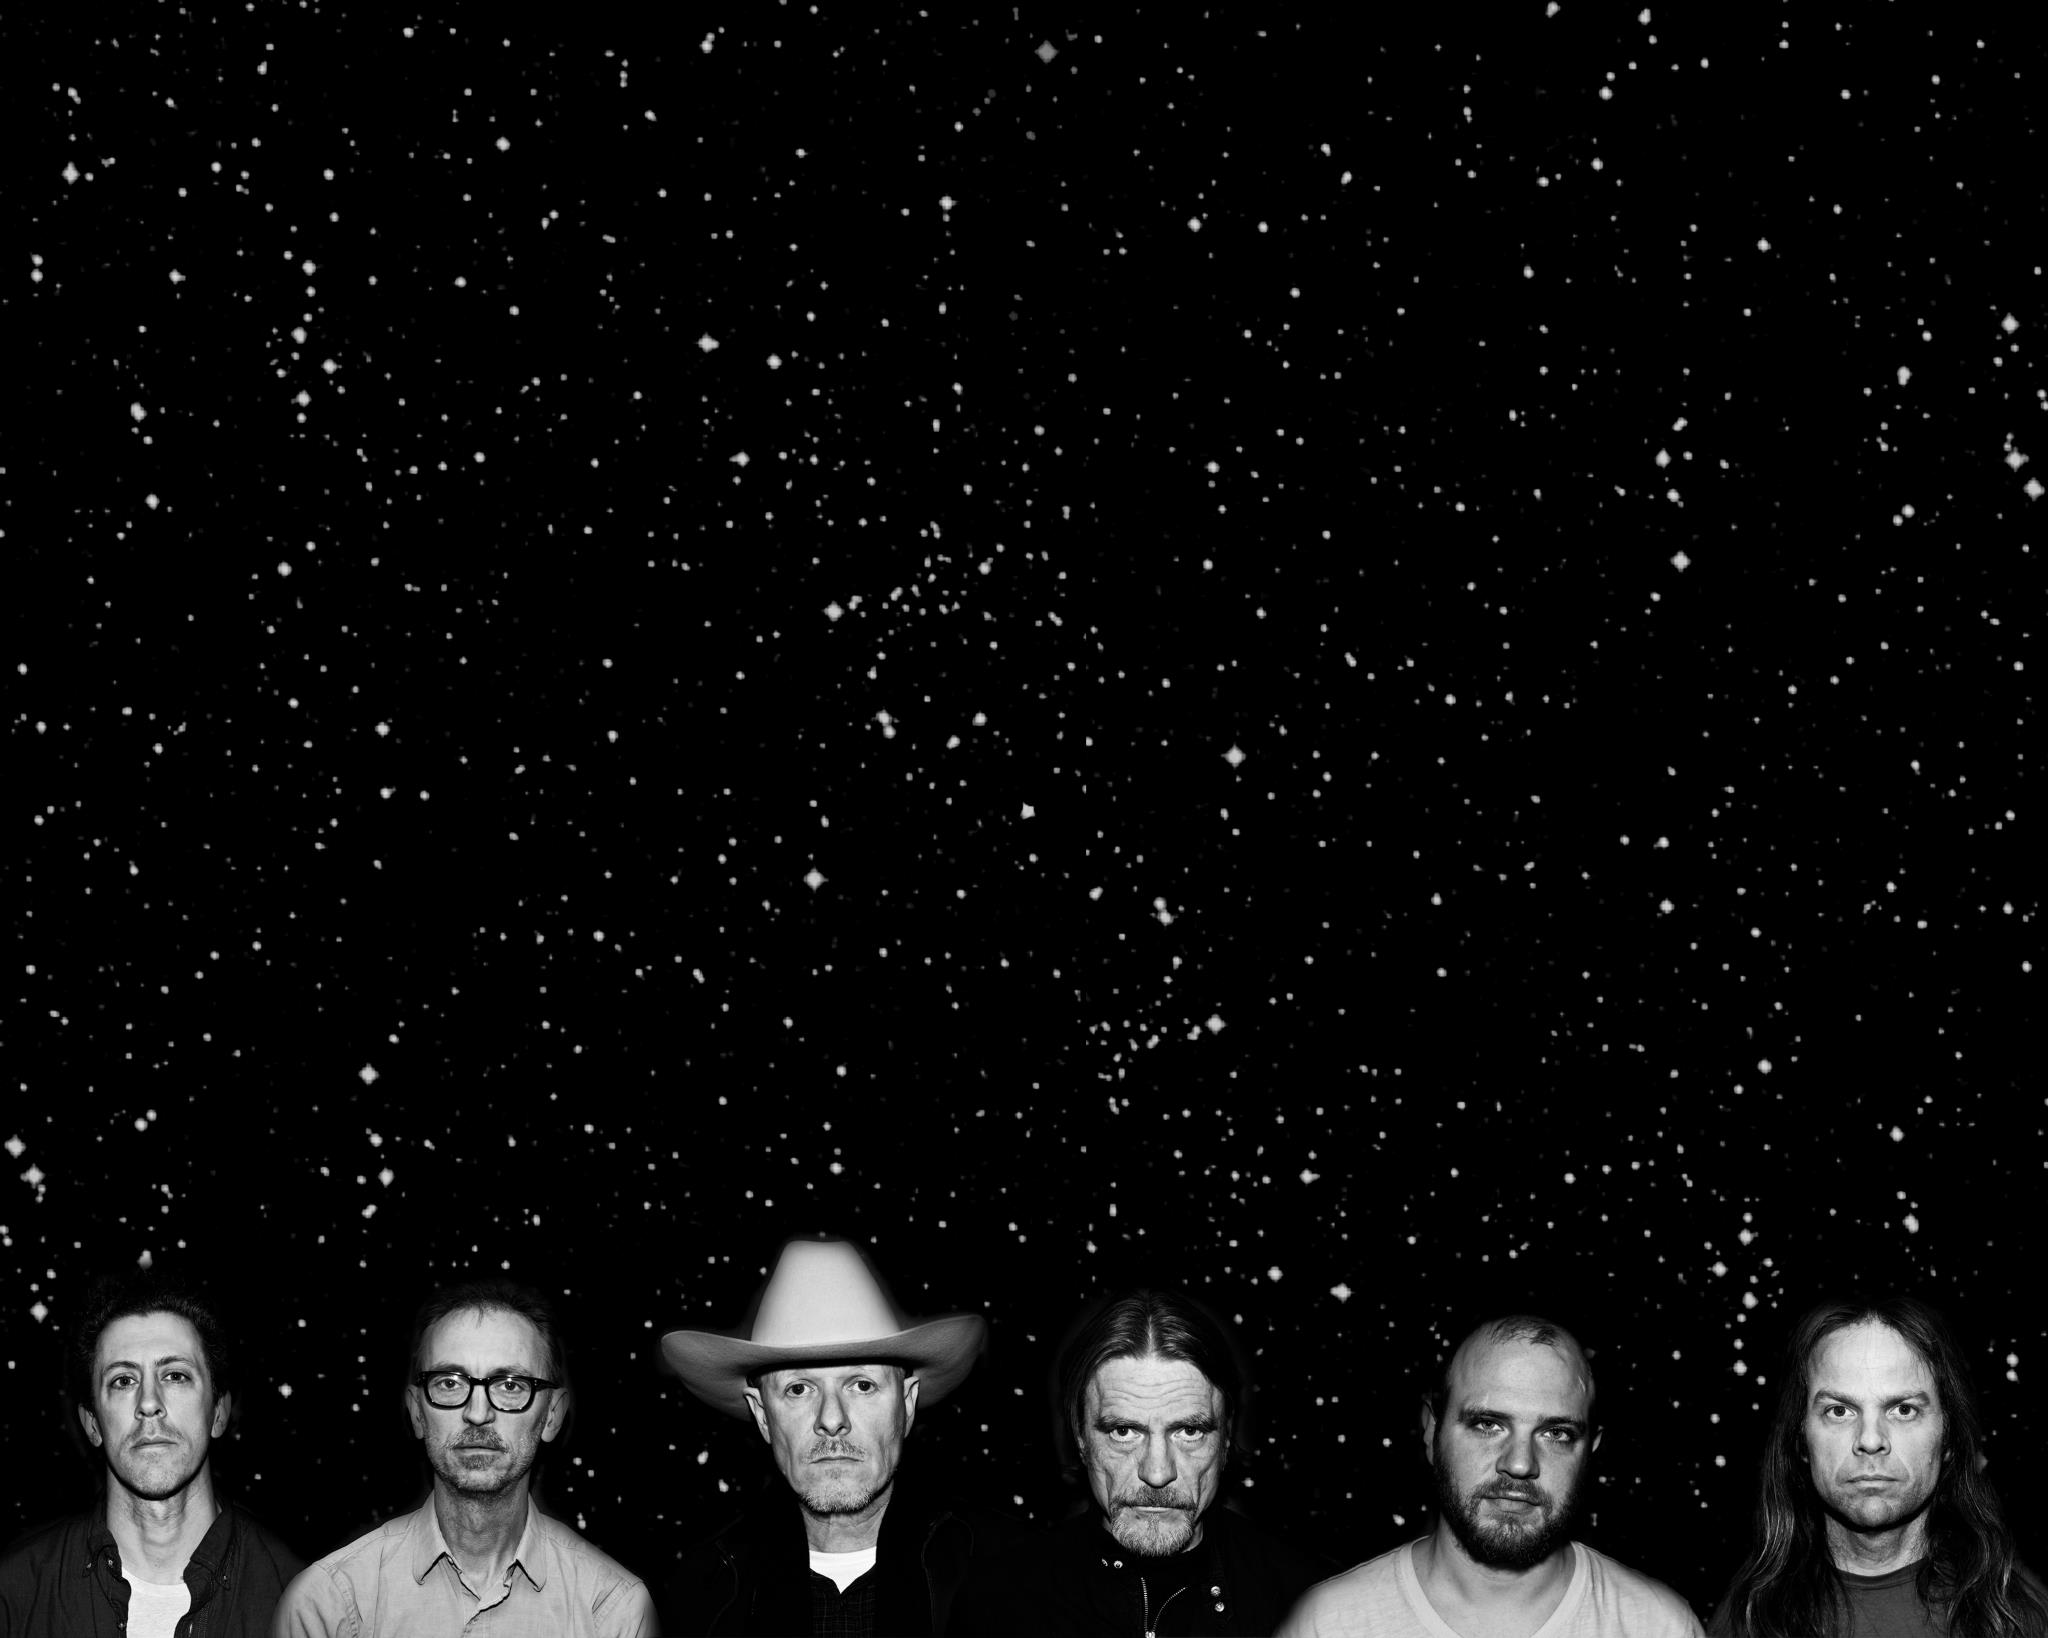 Swans announce new live dates, including stops in Athens and Oslo.